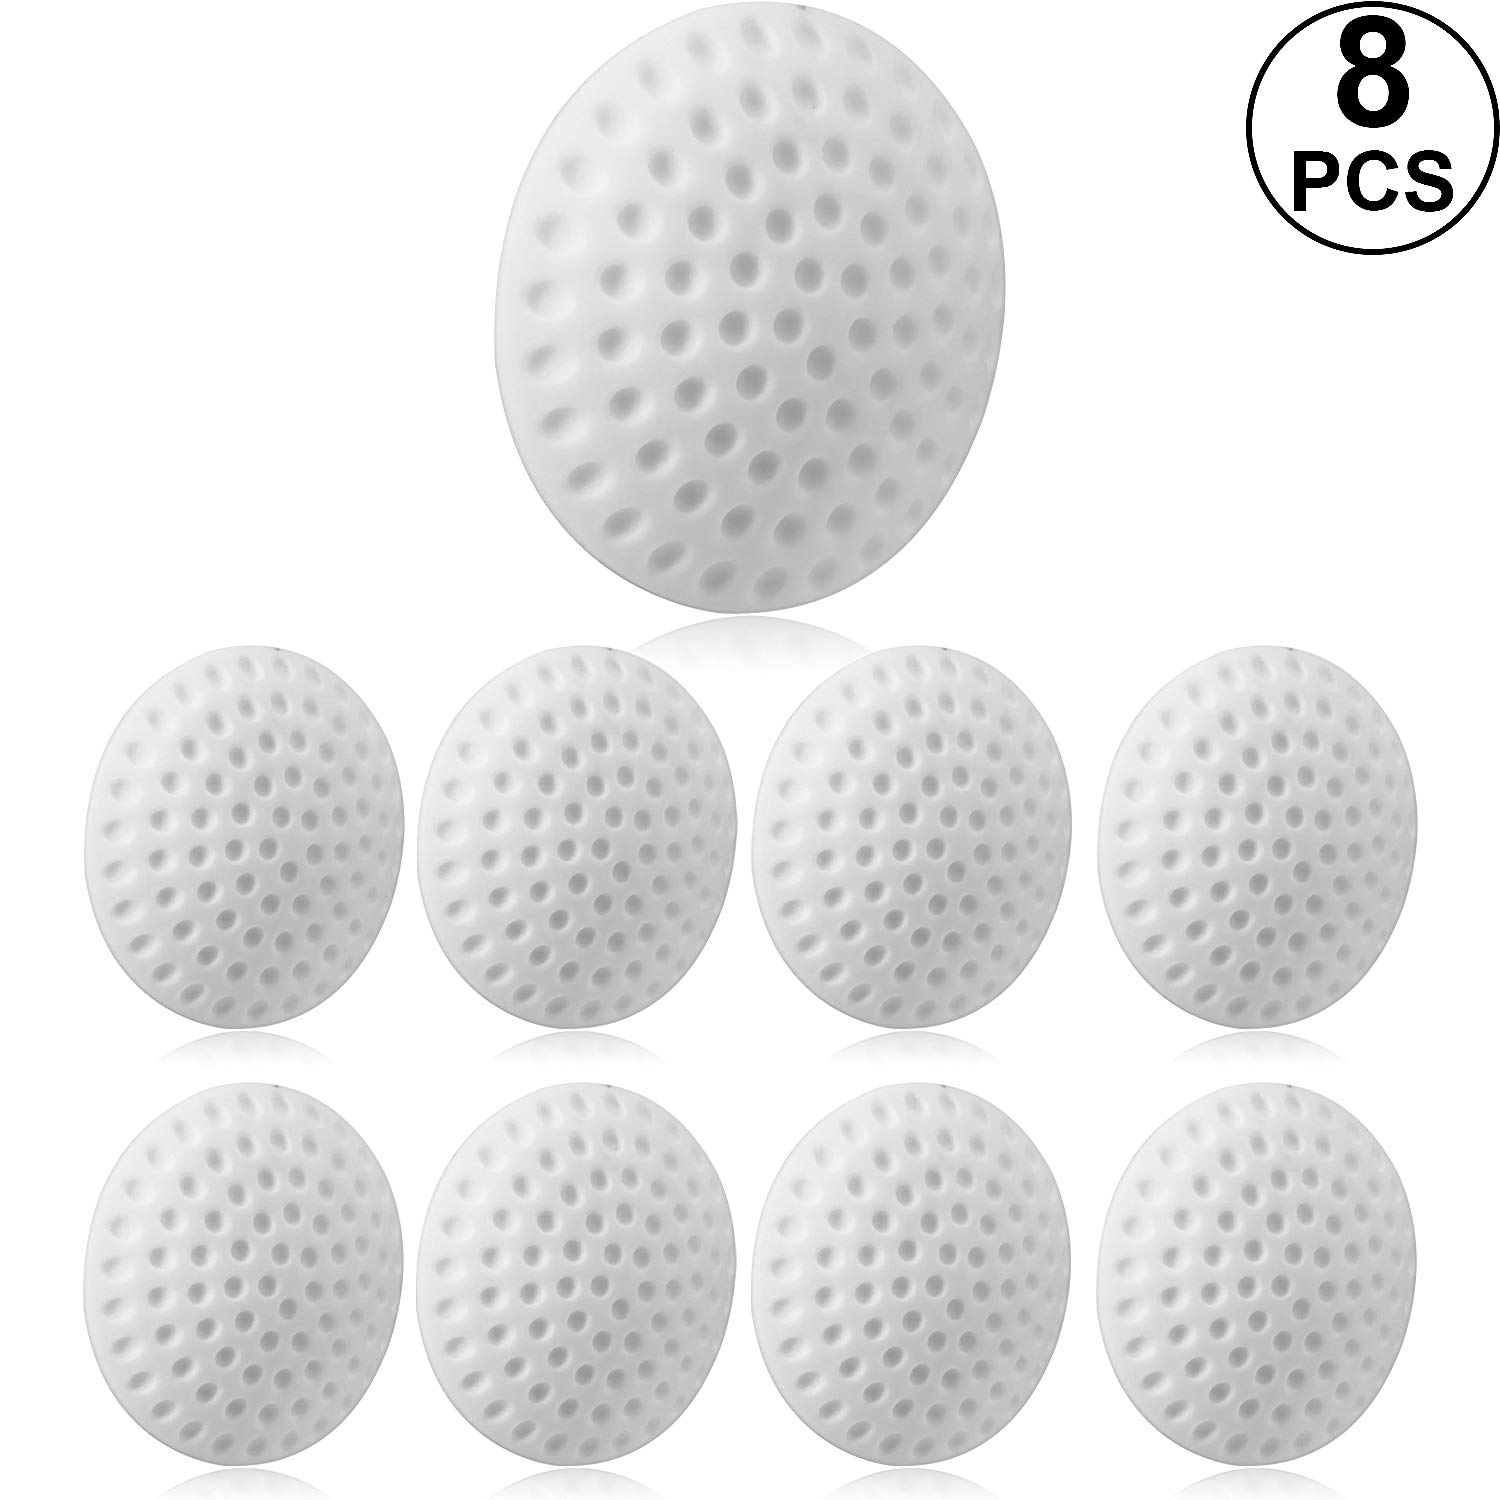 Office, White, 5.1 x 1.5 cm Door Stopper Bumper Kitchen 8 Pieces Silicone Round Wall Protector,Wall Protector Adhesive Round Door Stop Wall Protector for Bedroom Door Knob Protector Stopper